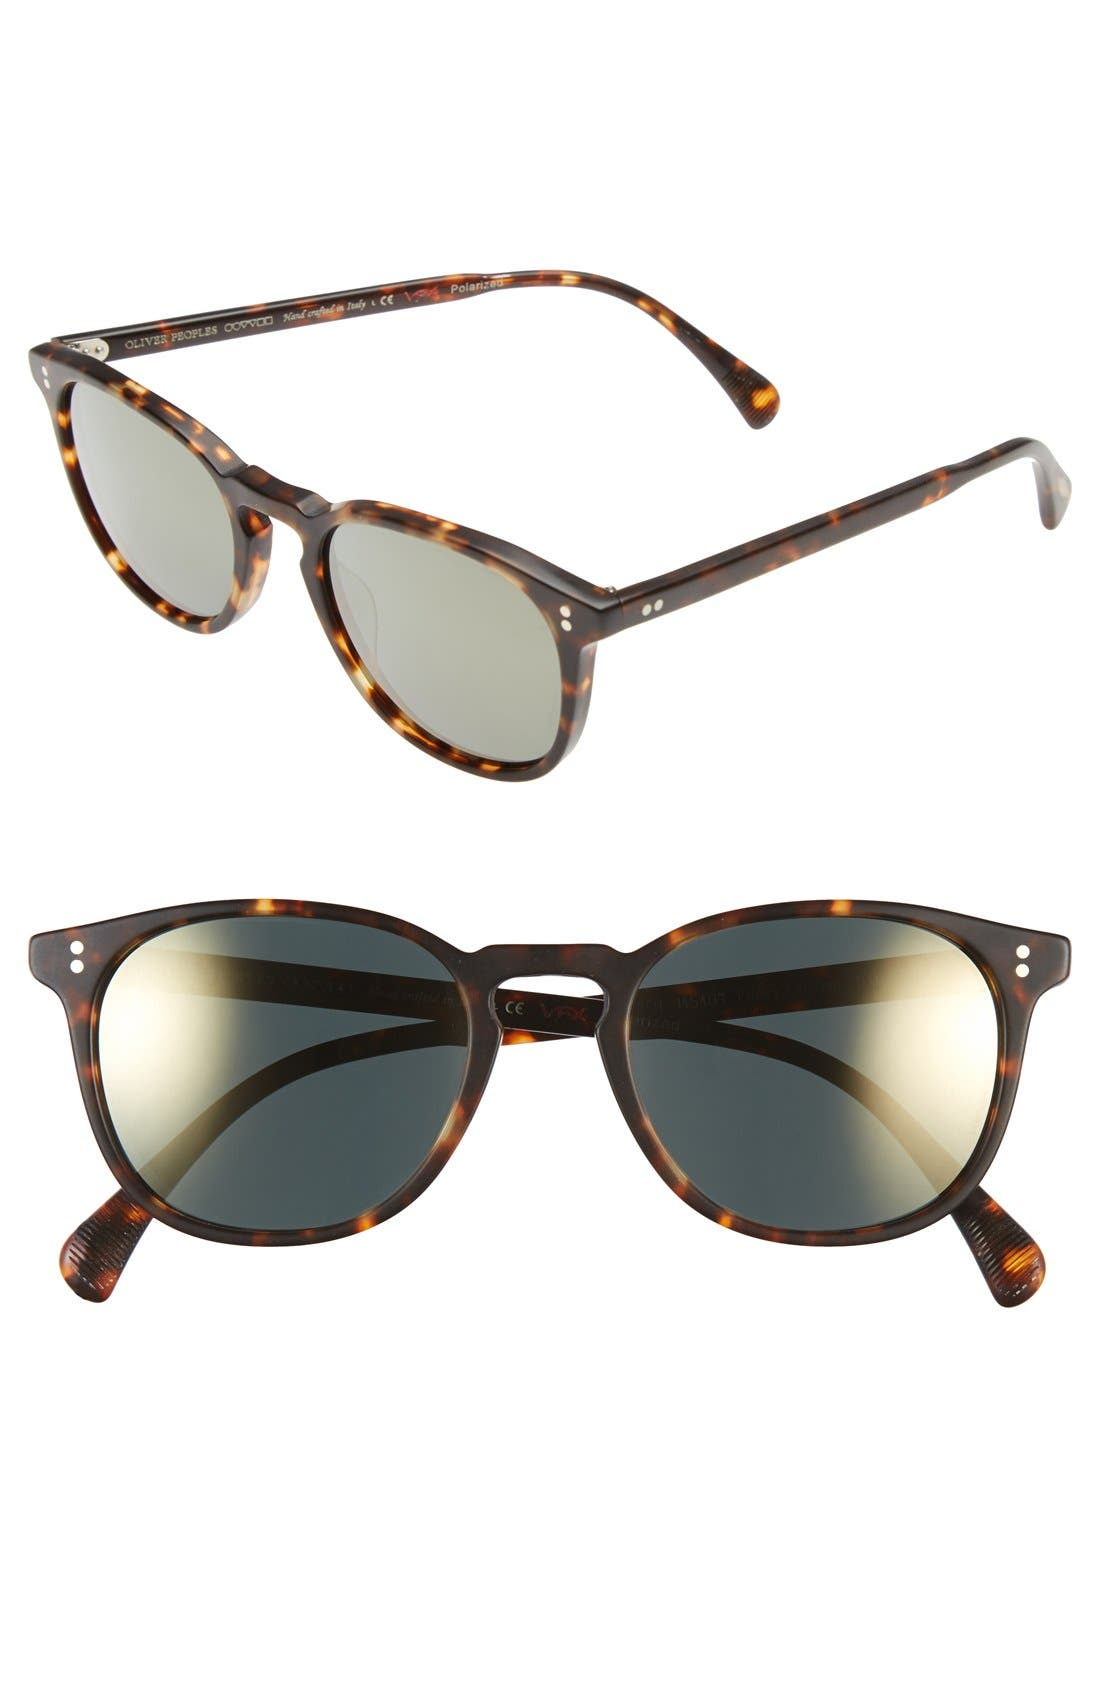 'Finley' 51mm Polarized Sunglasses,                         Main,                         color, Brown/ Tortoise/ Gold Polar